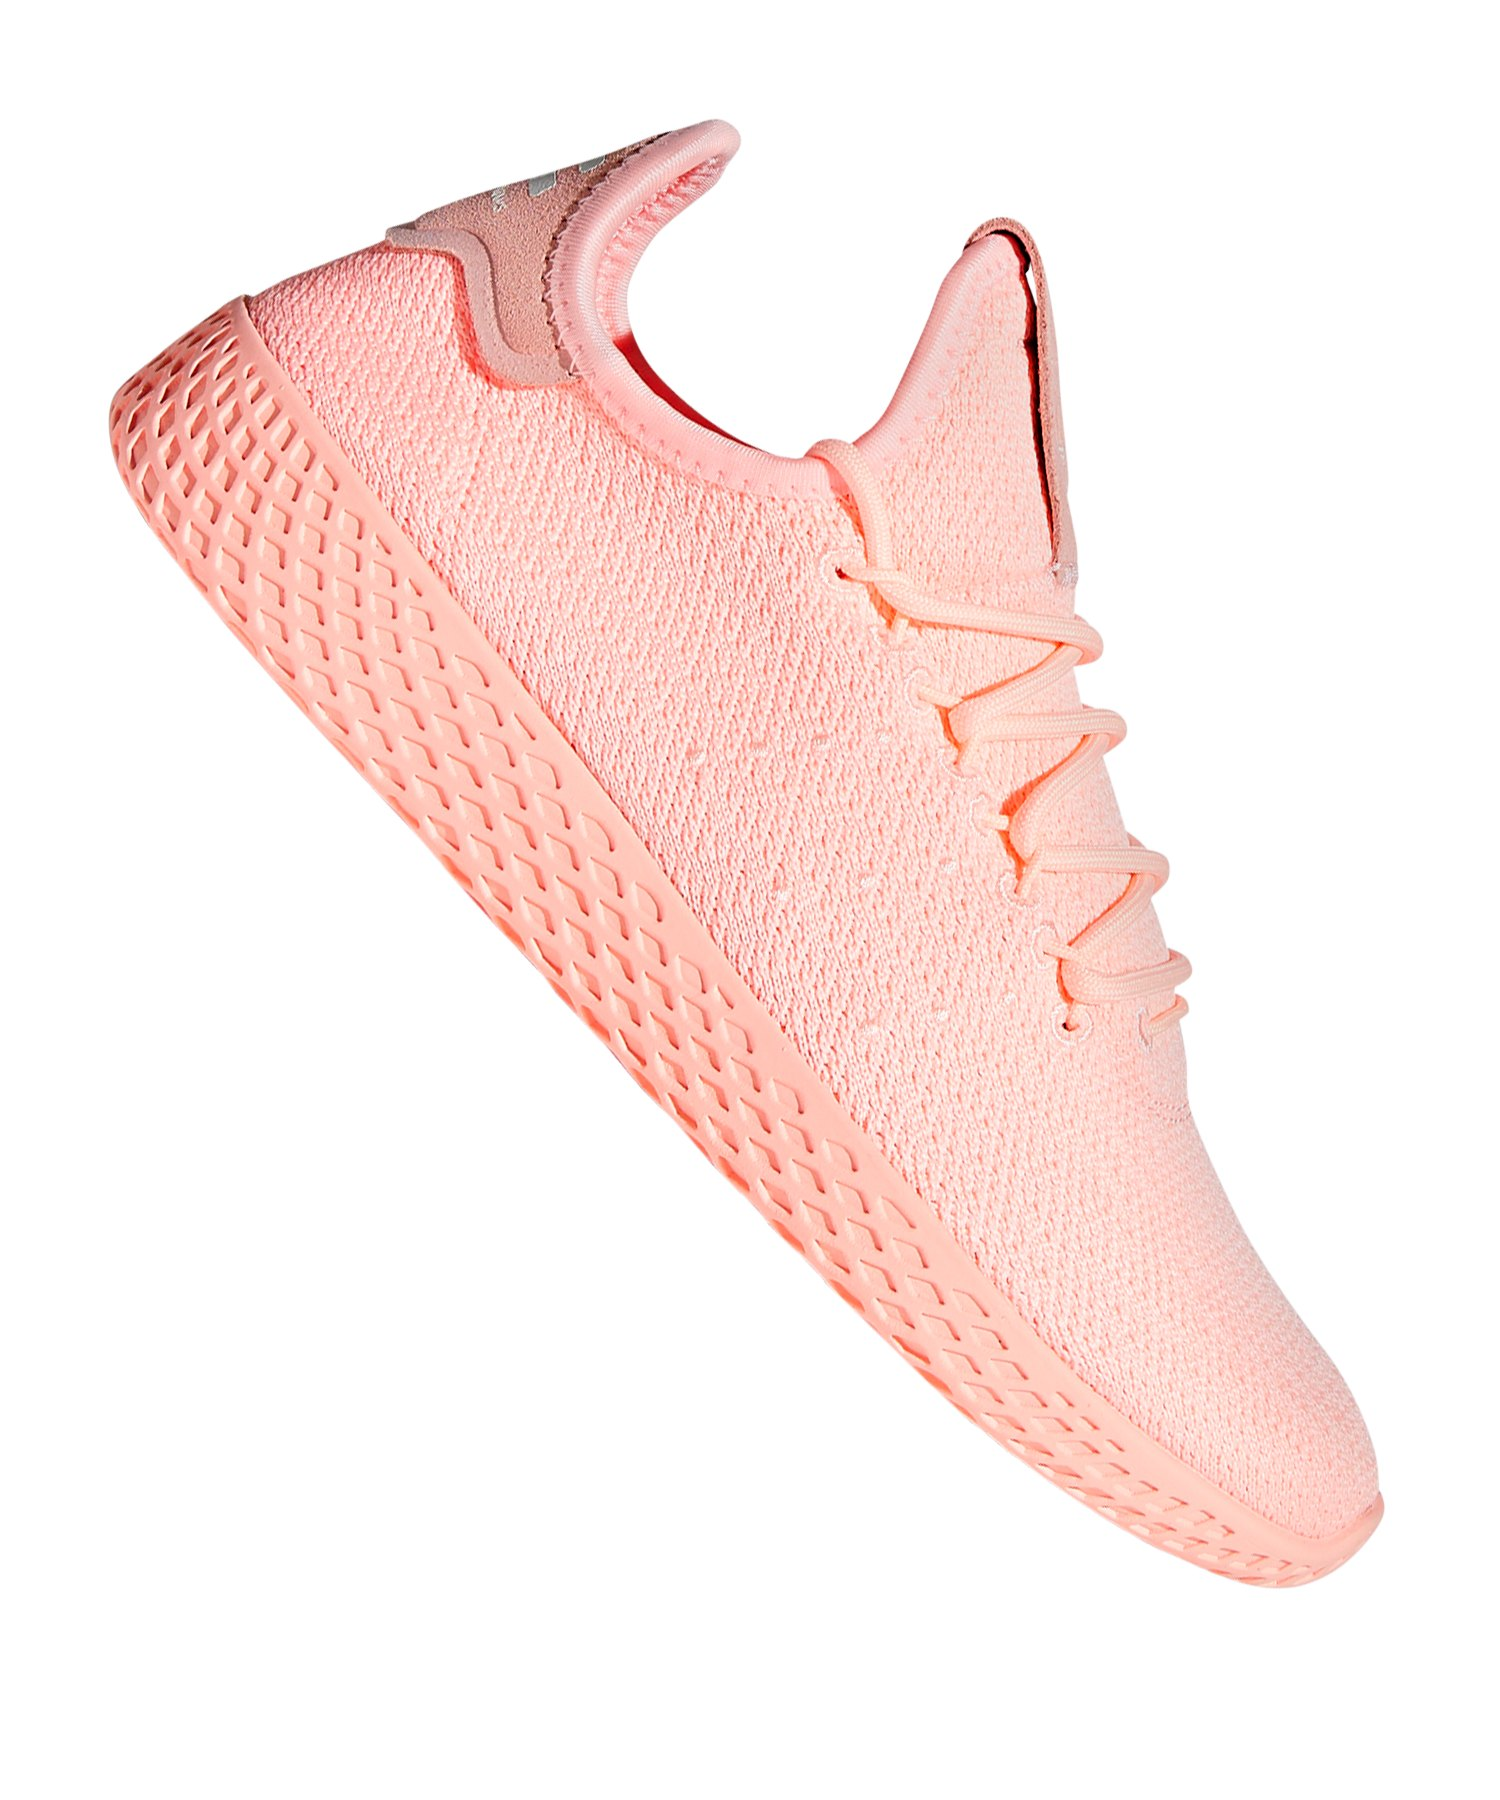 adidas Originals PW Tennis HU Sneaker Damen Rosa